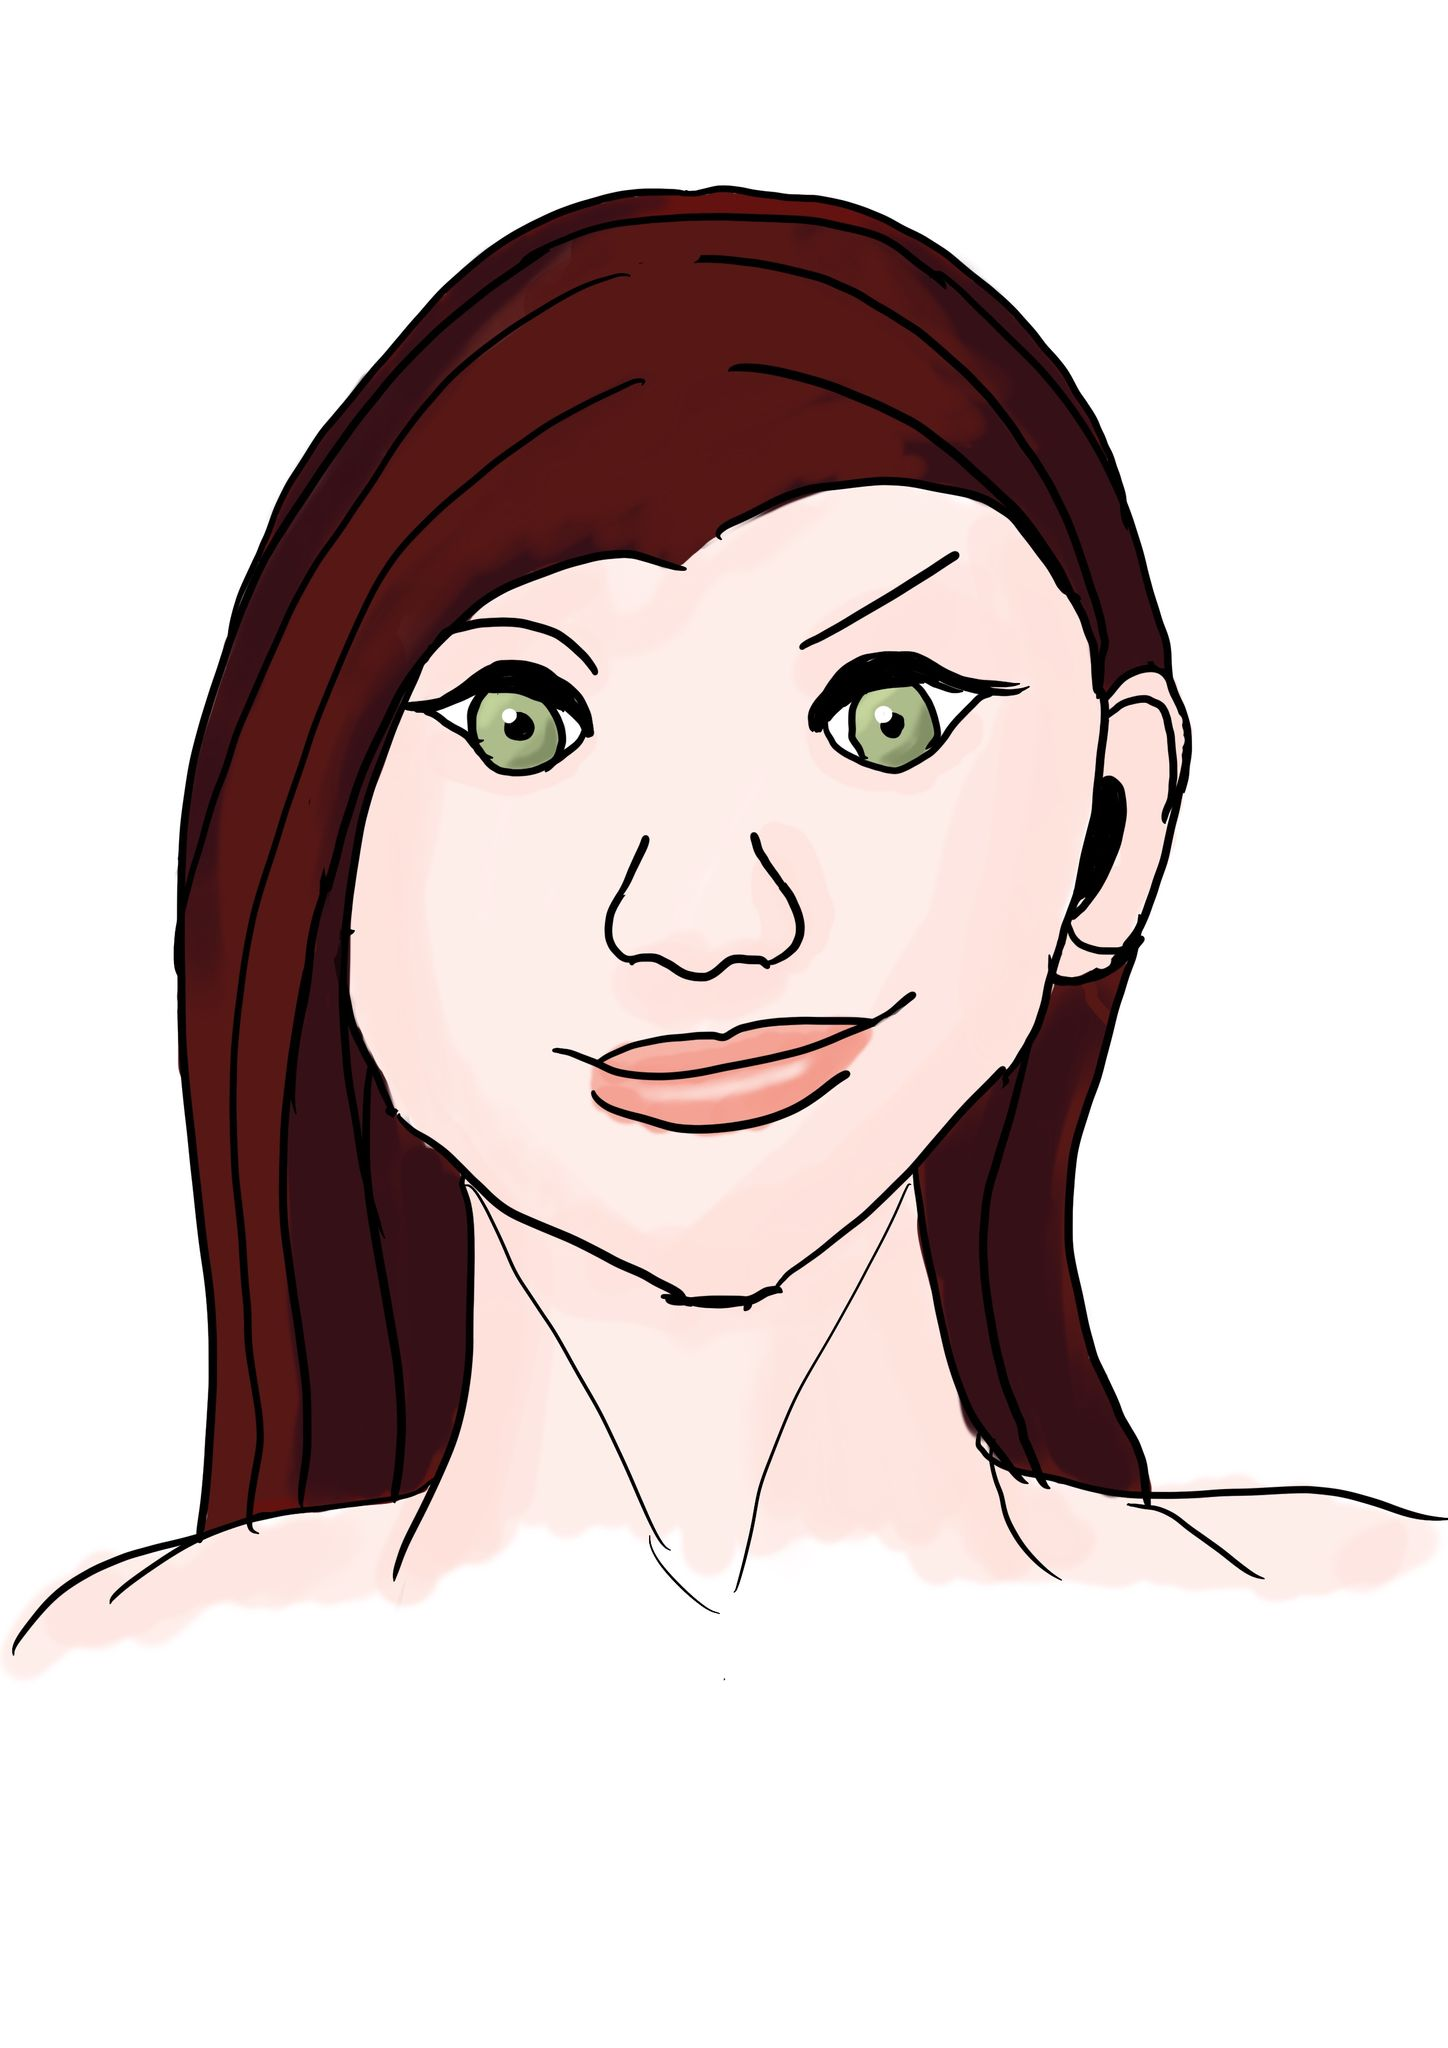 A portrait sketch of a pale red-haired woman with green eyes, smirking and raising one eyebrow.